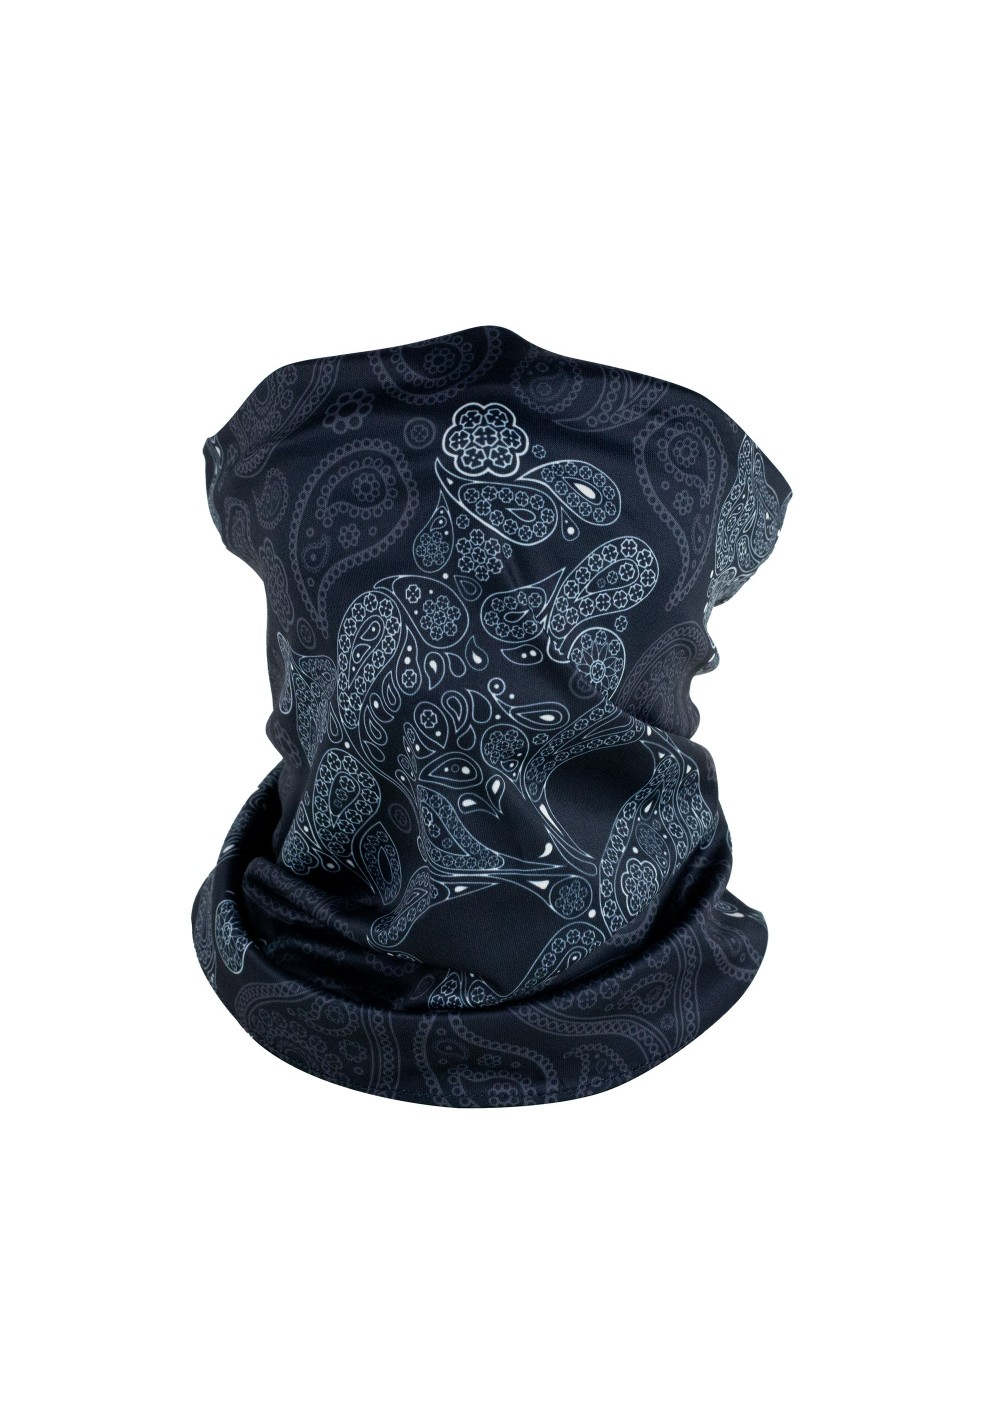 skull print neck gaiter in black and charcoal gray